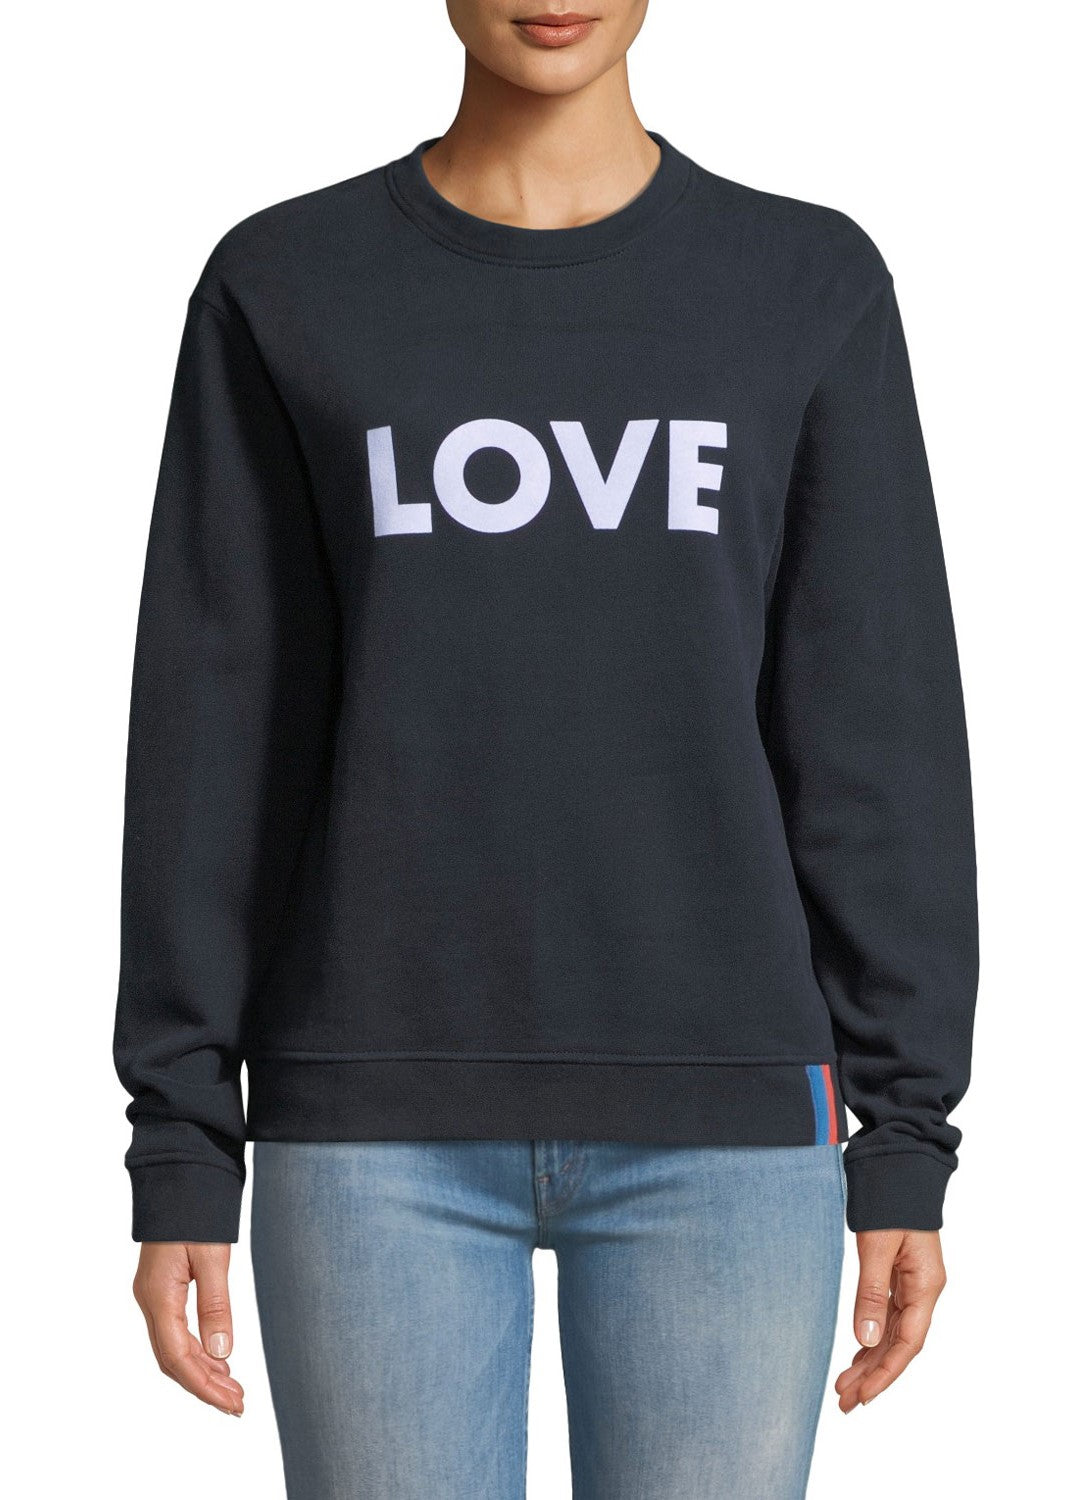 Kule Raleigh love sweater in navy